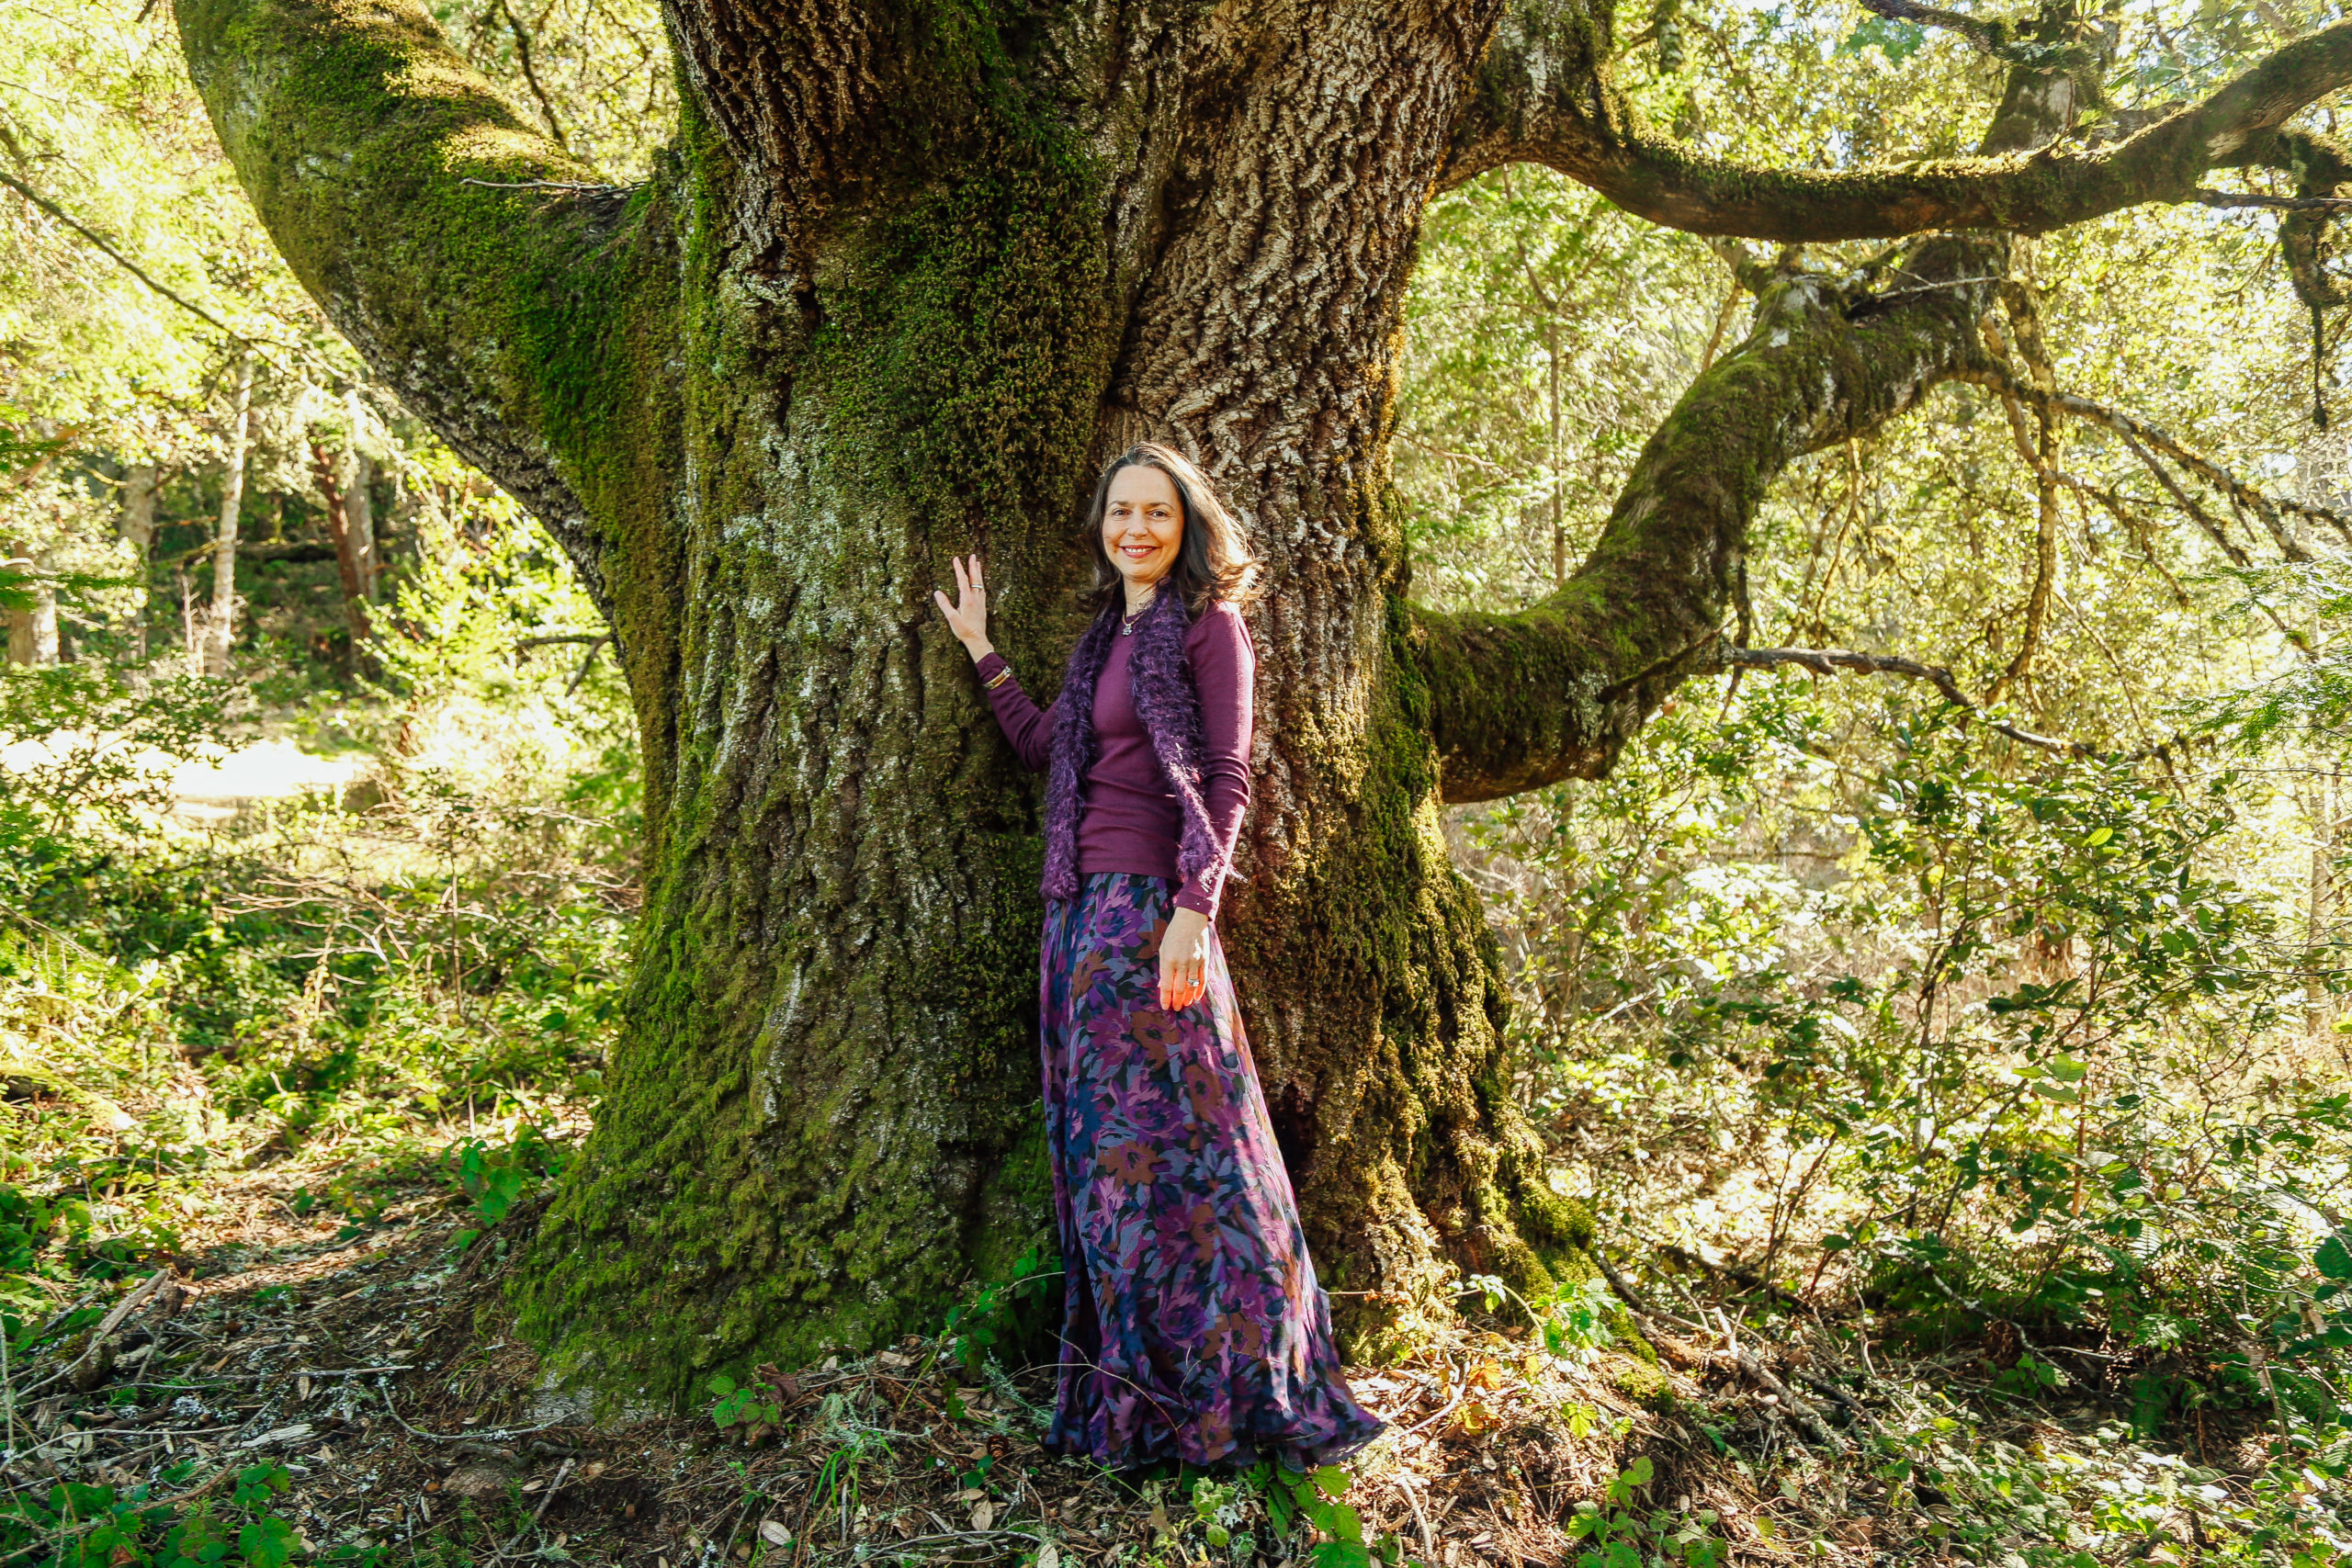 Rev. Connie by a large tree - thriving in challenging times